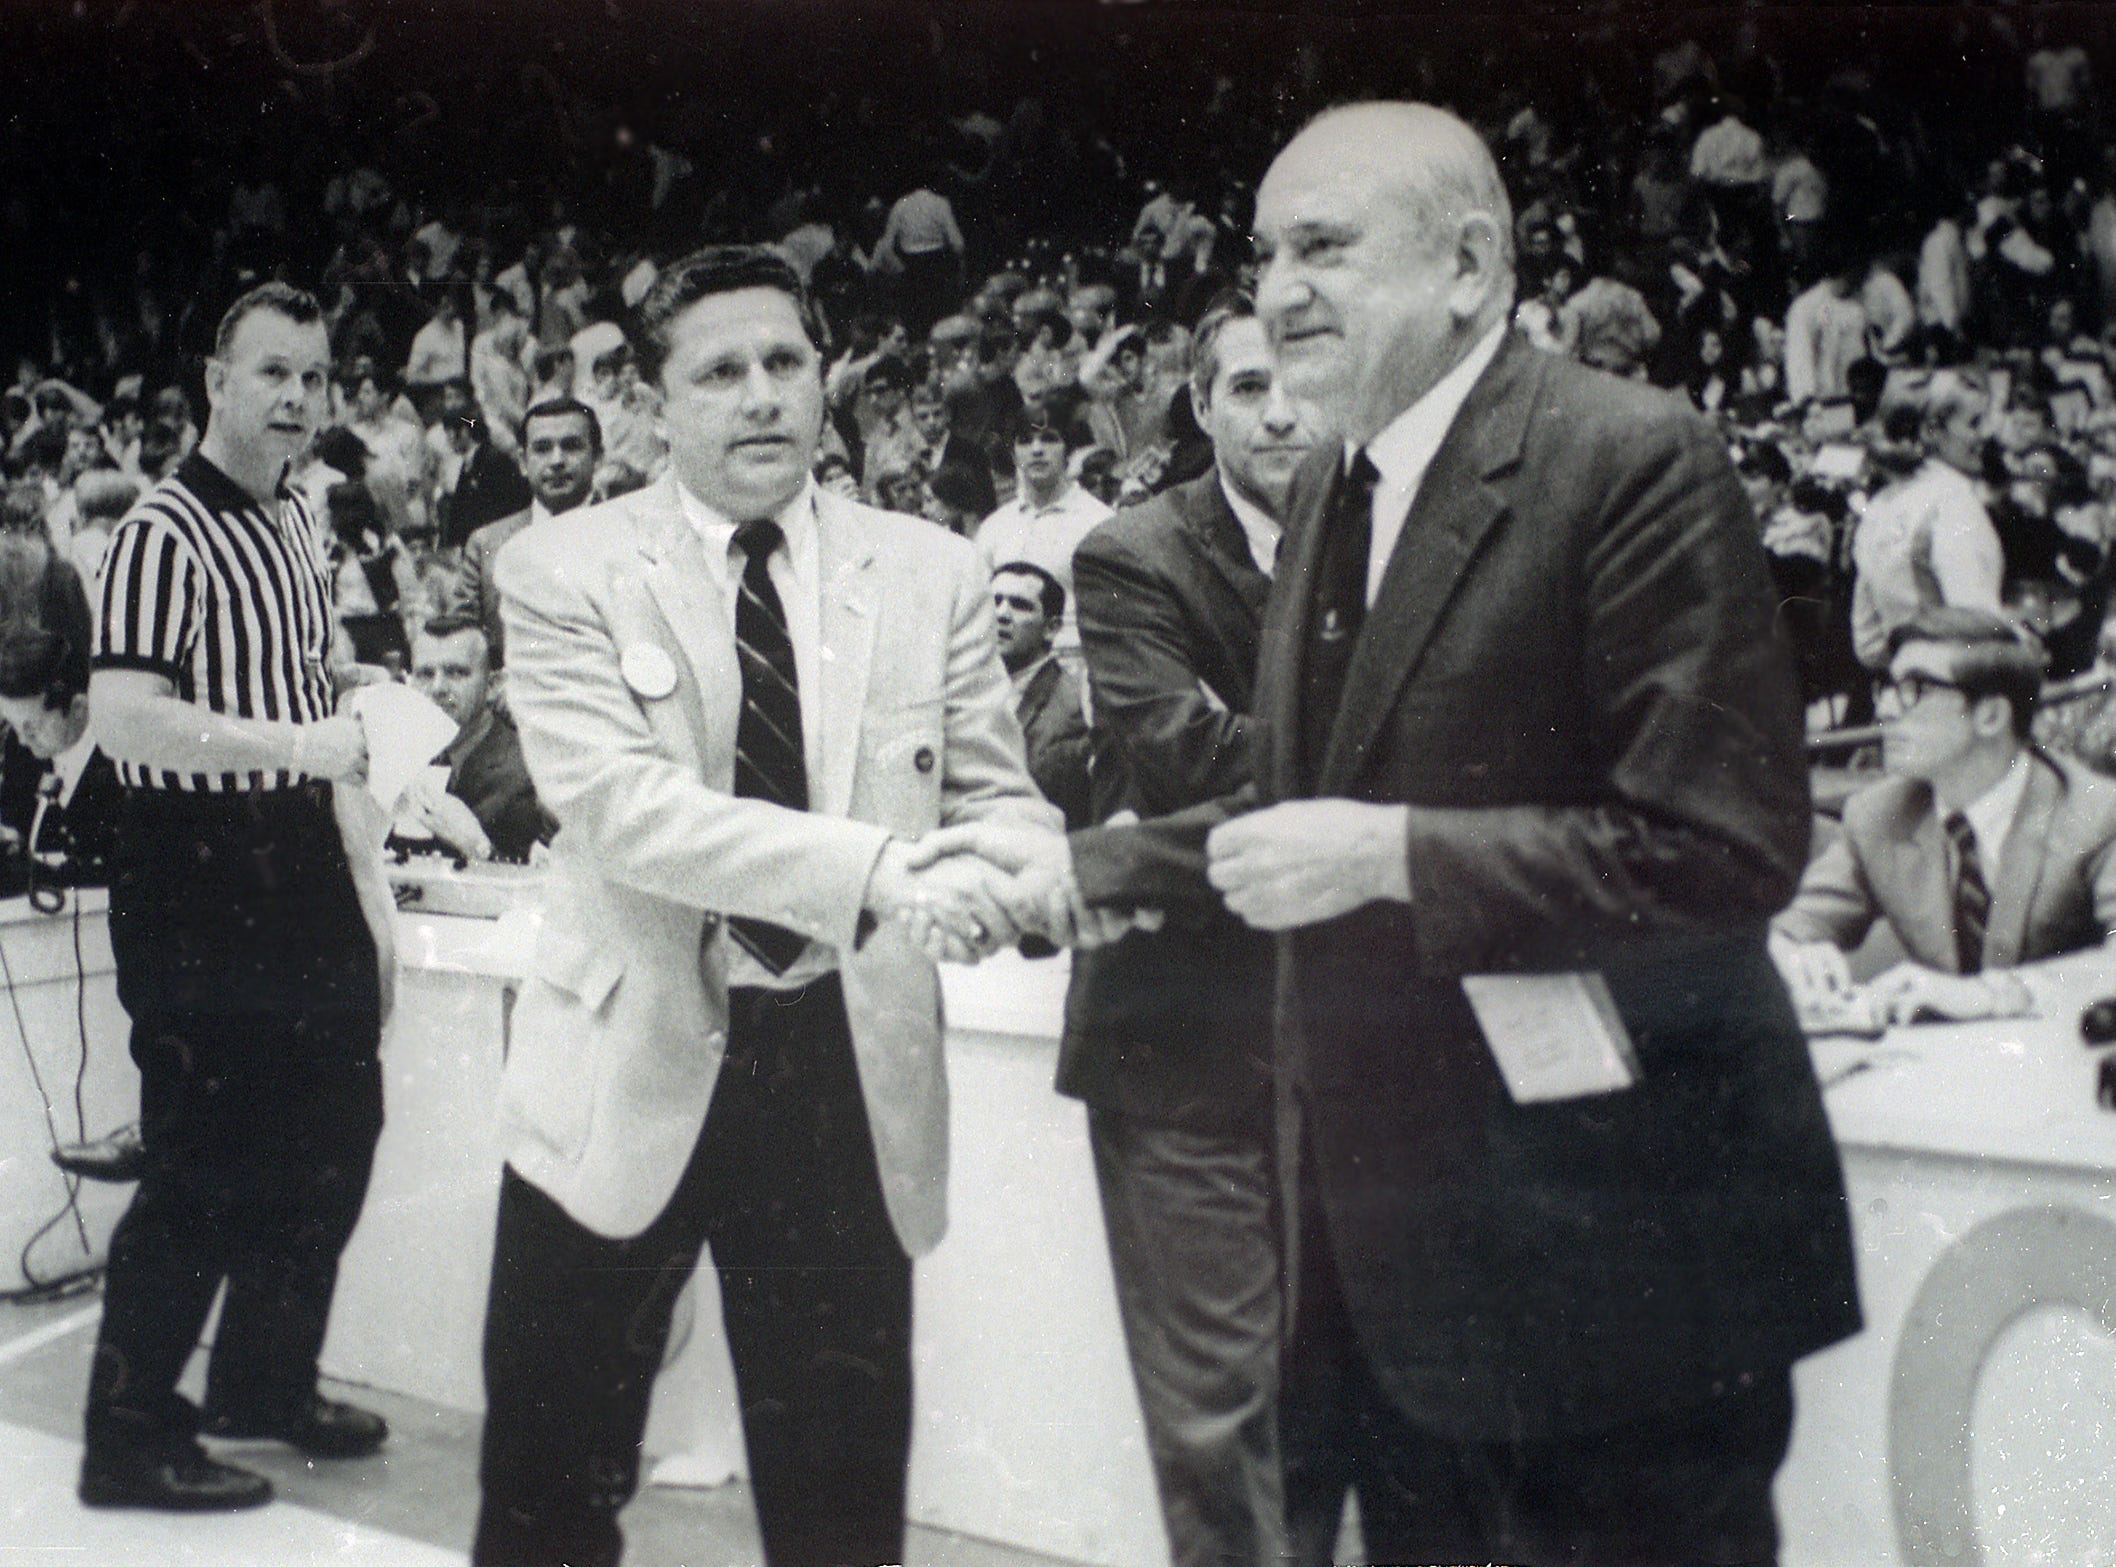 An undated photograph of University of Tennessee basketball Coach Ray Mears, left, with University of Kentucky Coach Adolph Rupp. Mears died at age 80 on June 11, 2007.